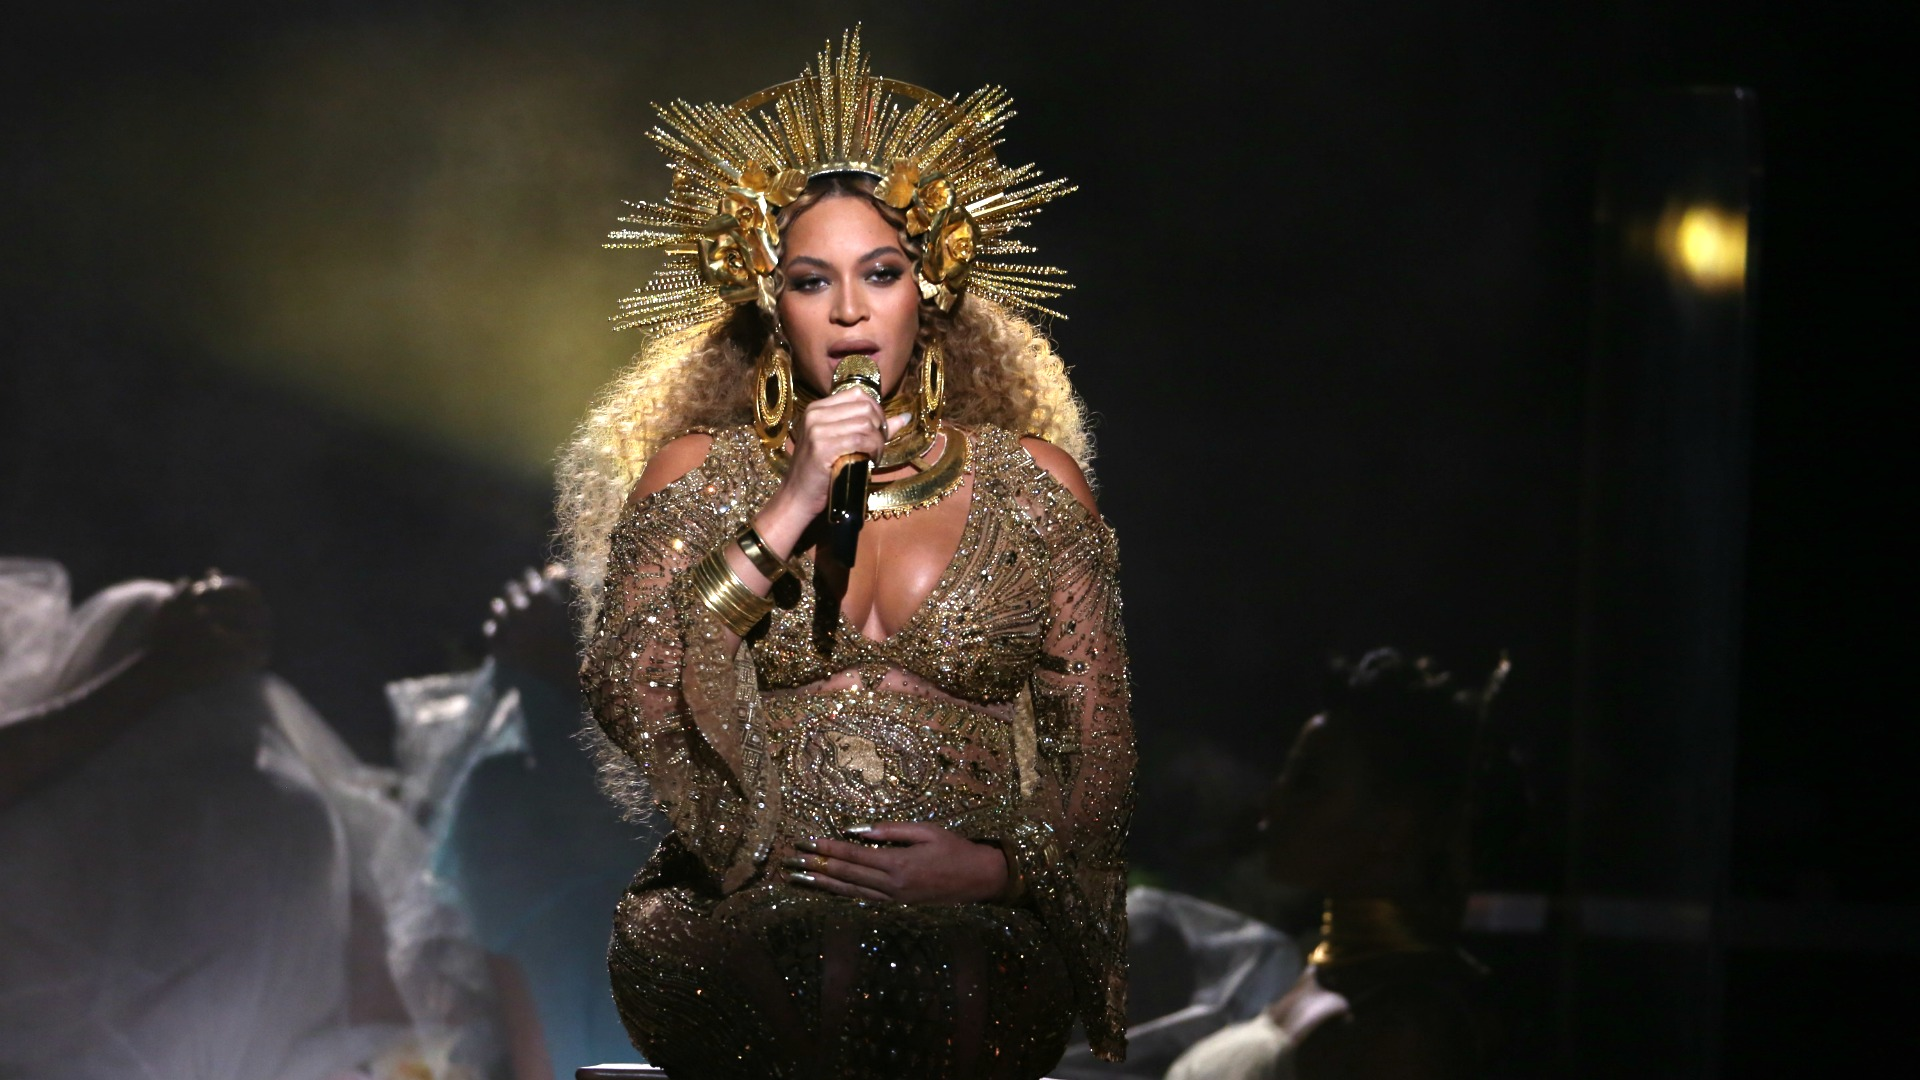 Beyoncé proved she's, in fact, a true queen with her powerful GRAMMY performance of